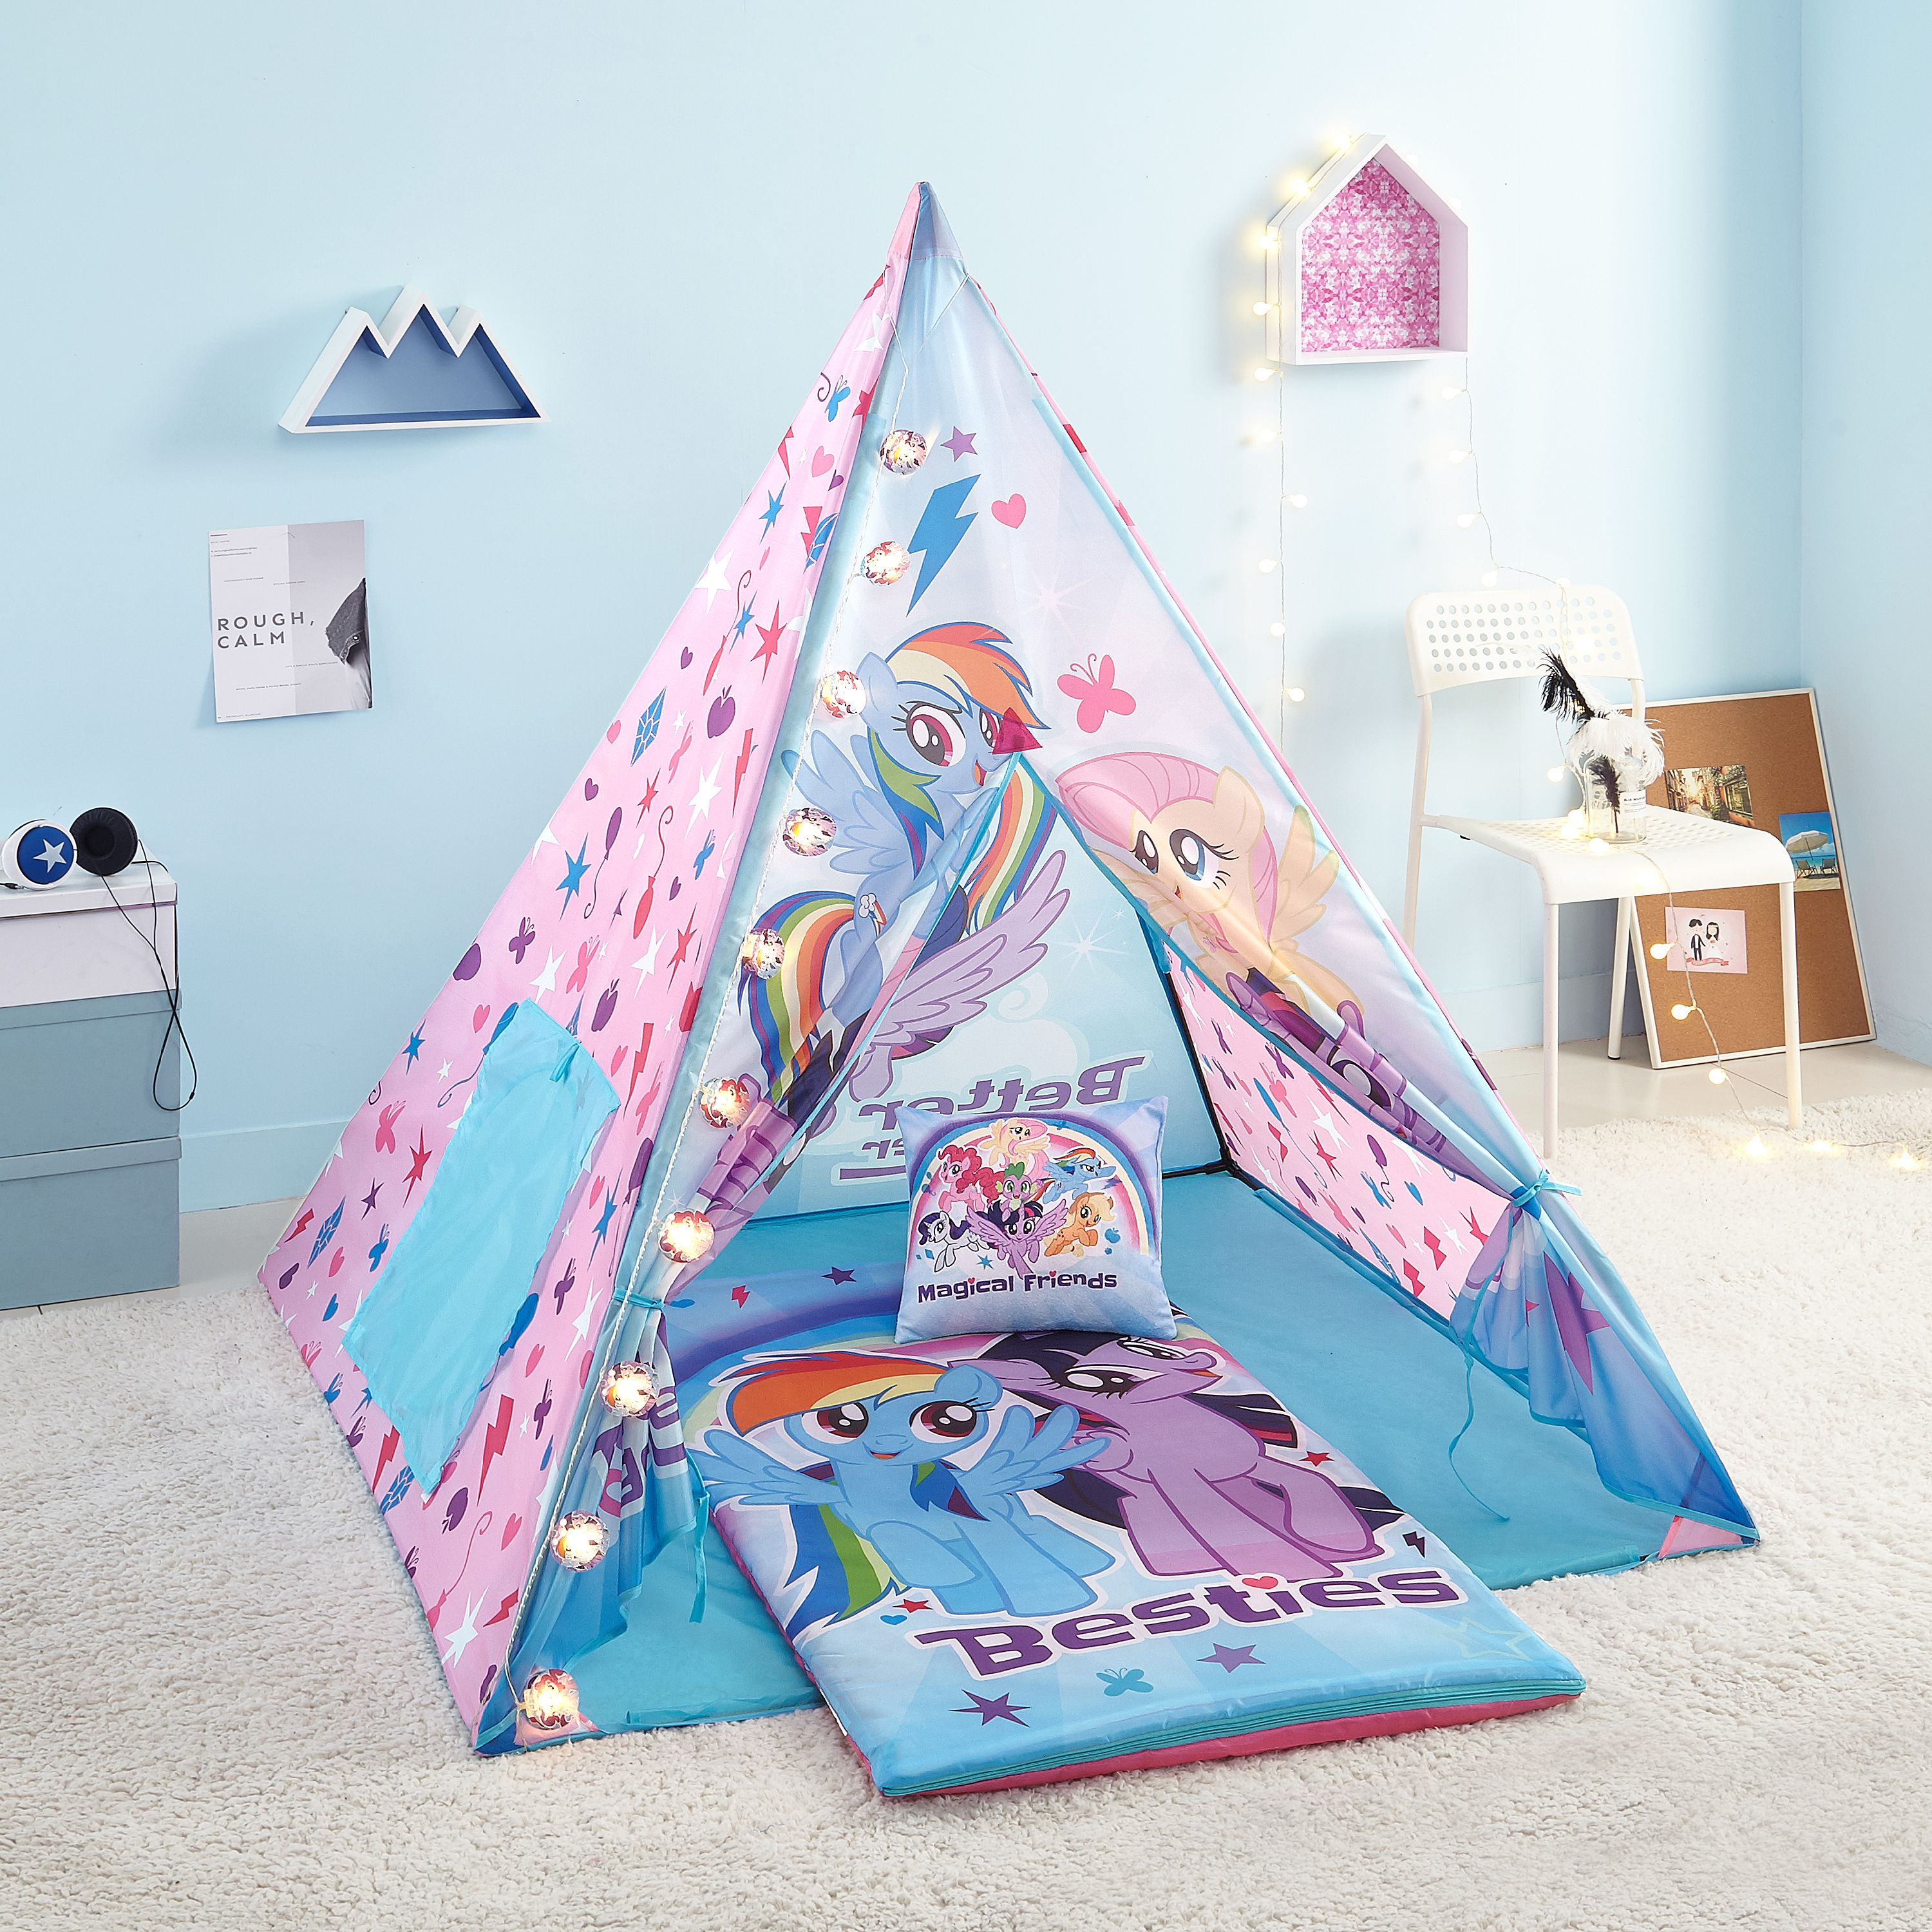 My Little Pony Teepee Tent Set Includes My Little Pony Light, My Little Pony Slumber Bag, and My Little Pony Pillow